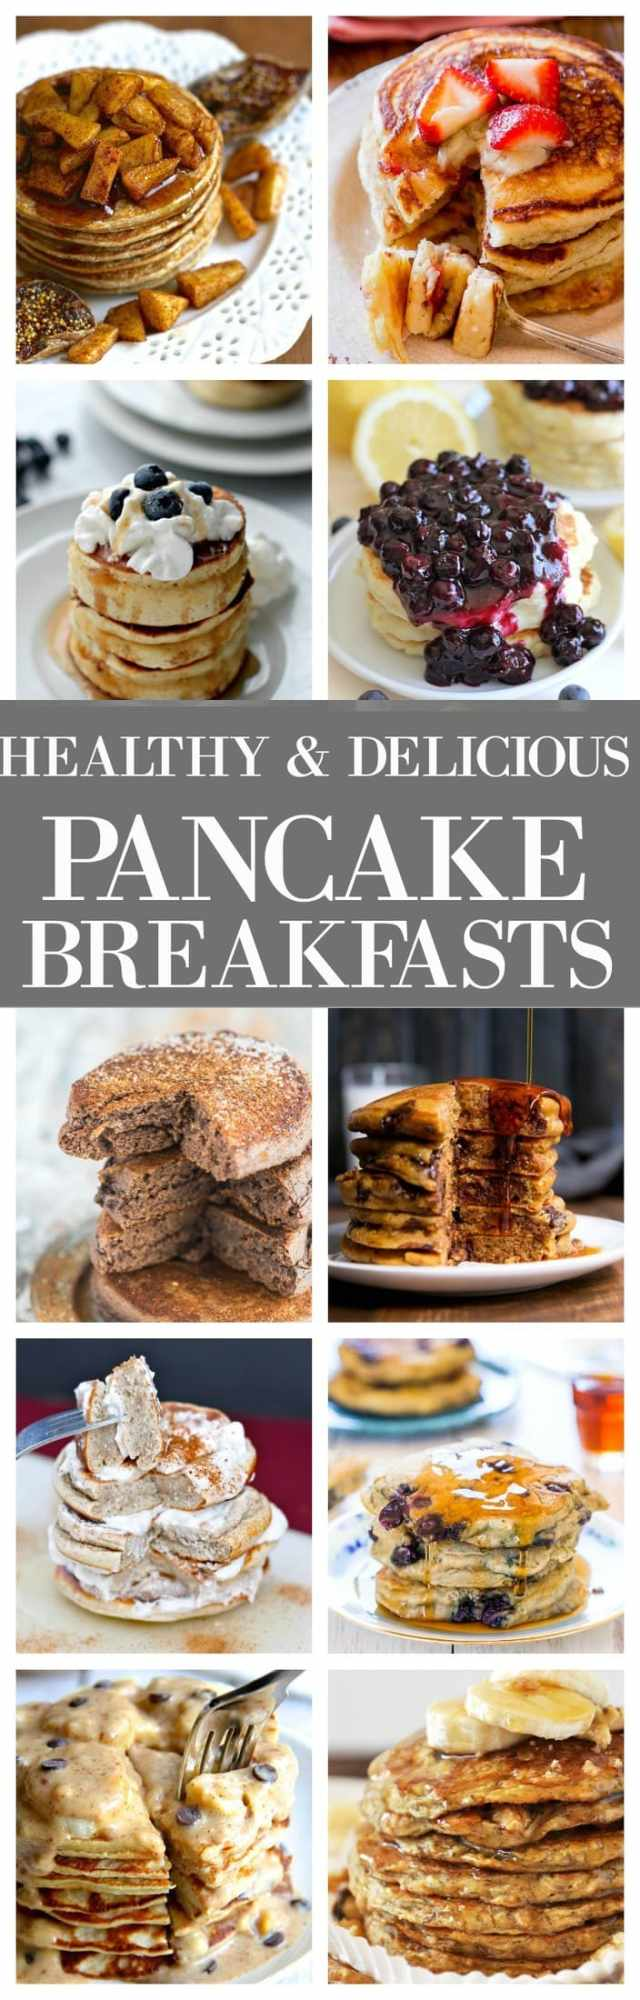 Healthy and Delicious pancakes to take your breakfast to the next level- Options for EVERYONE!